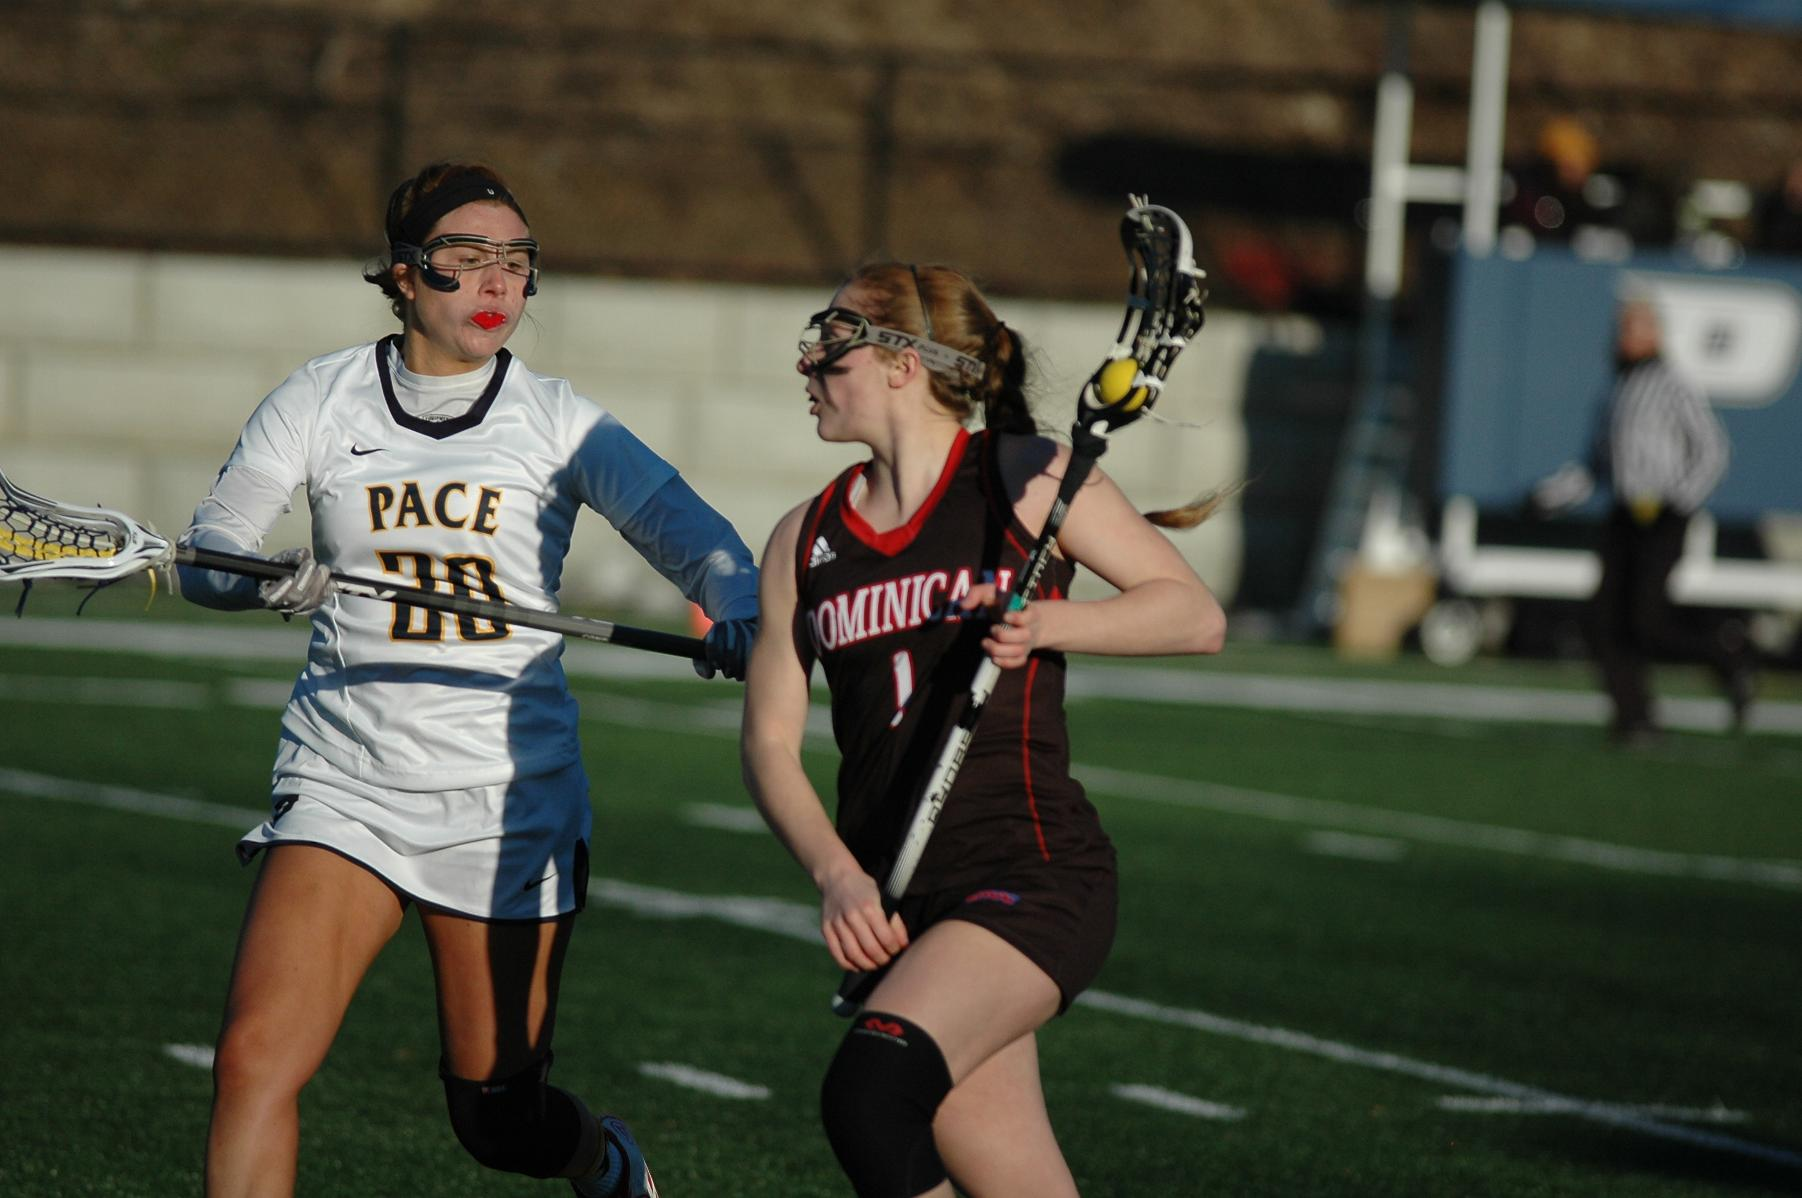 FITZGERALD SCORES 100TH CAREER GOAL IN VICTORY OVER NYACK COLLEGE